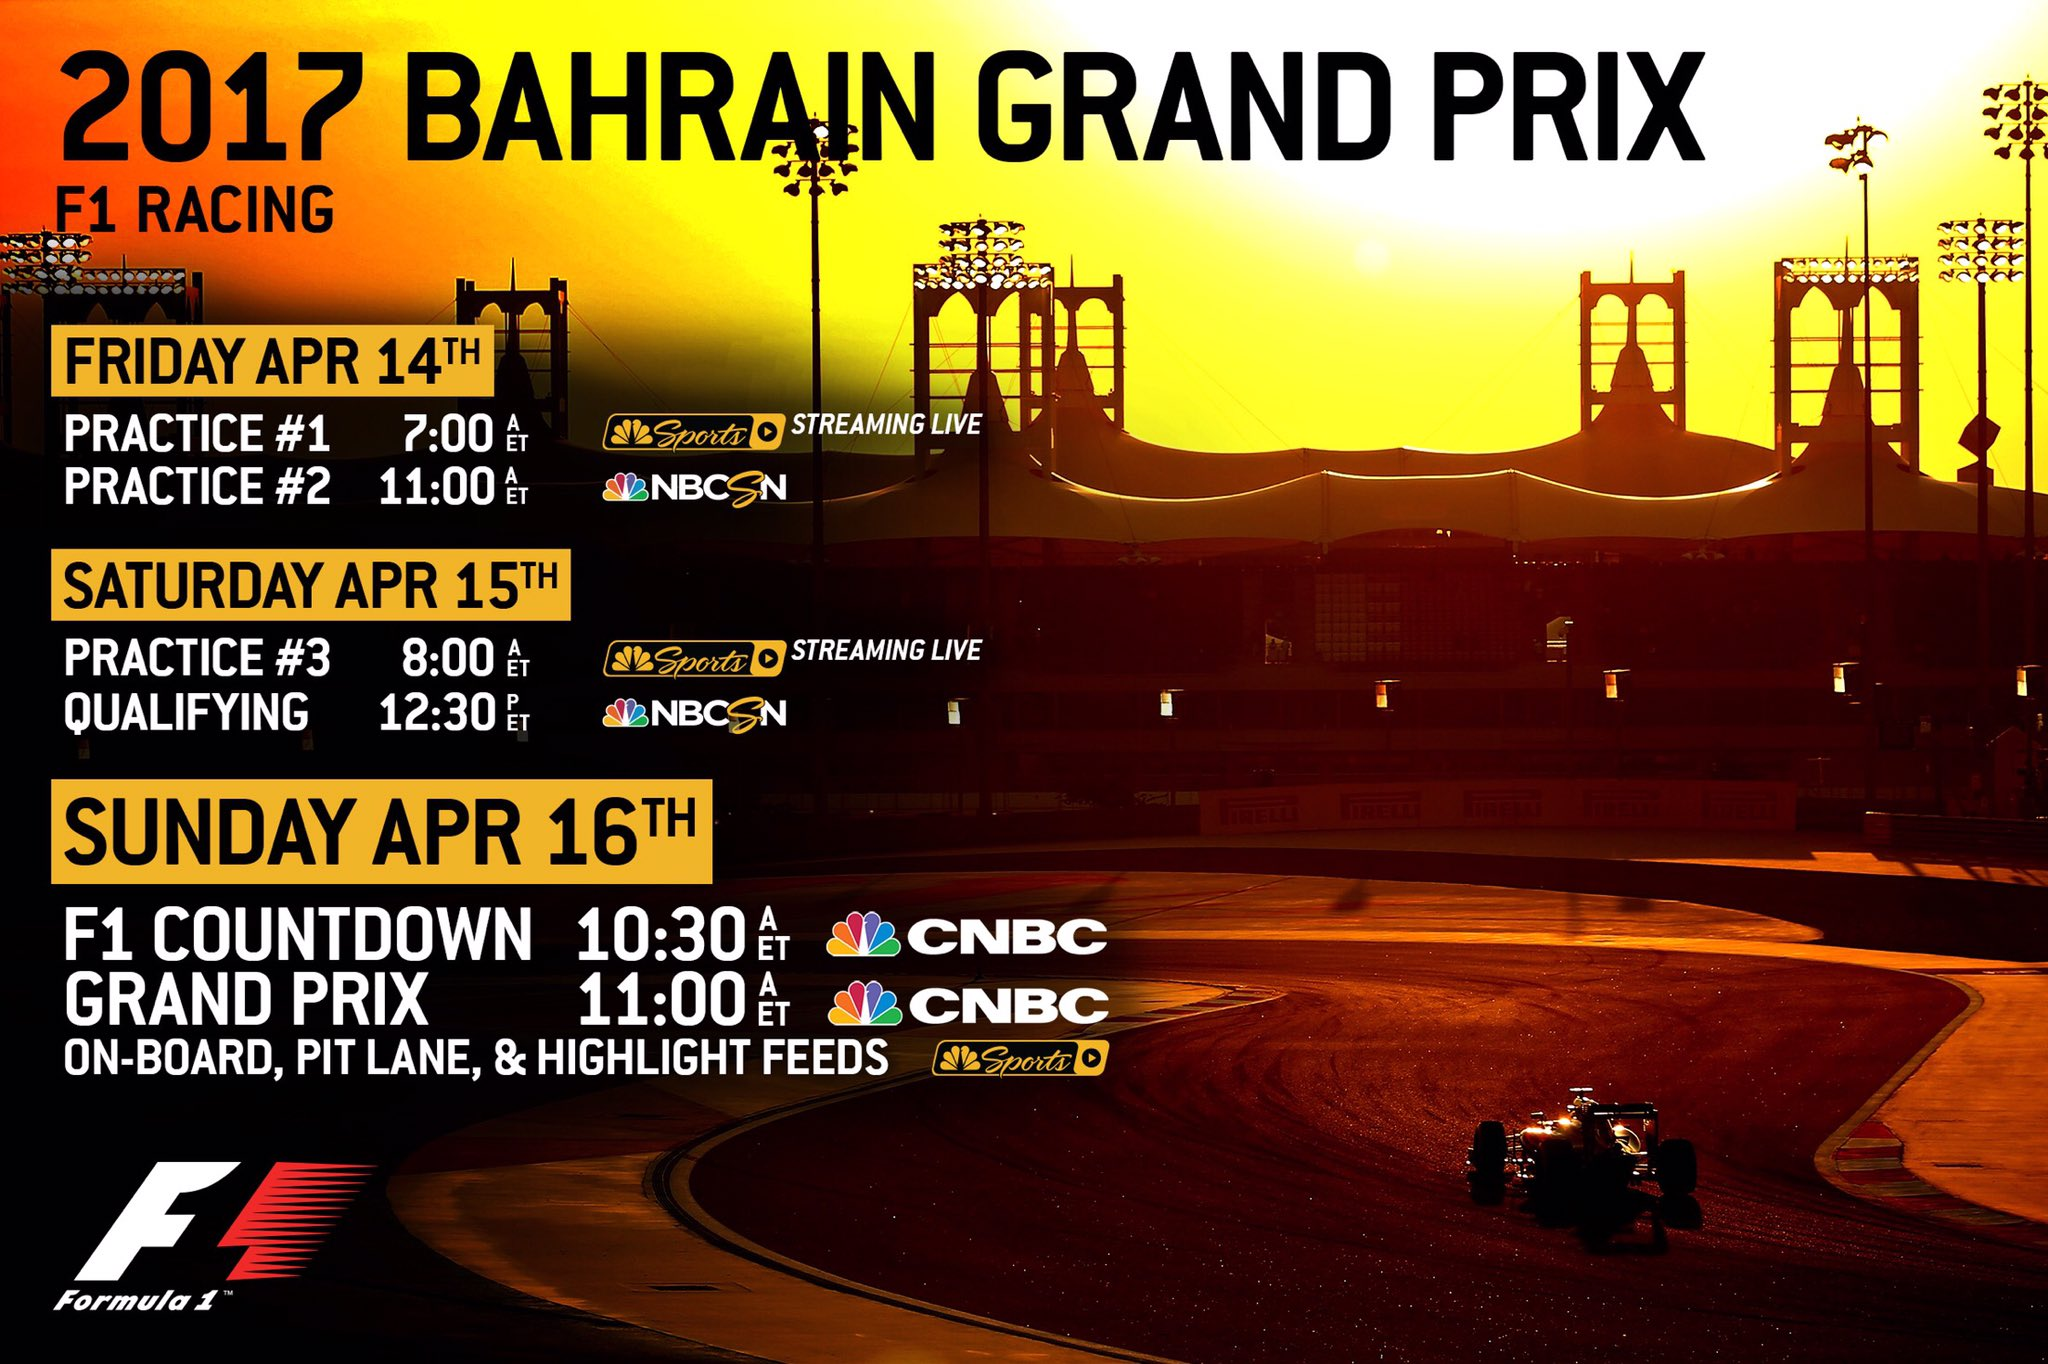 f1 on nbc sports on twitter formula 1 enters the night this weekend with the bahrain grand. Black Bedroom Furniture Sets. Home Design Ideas